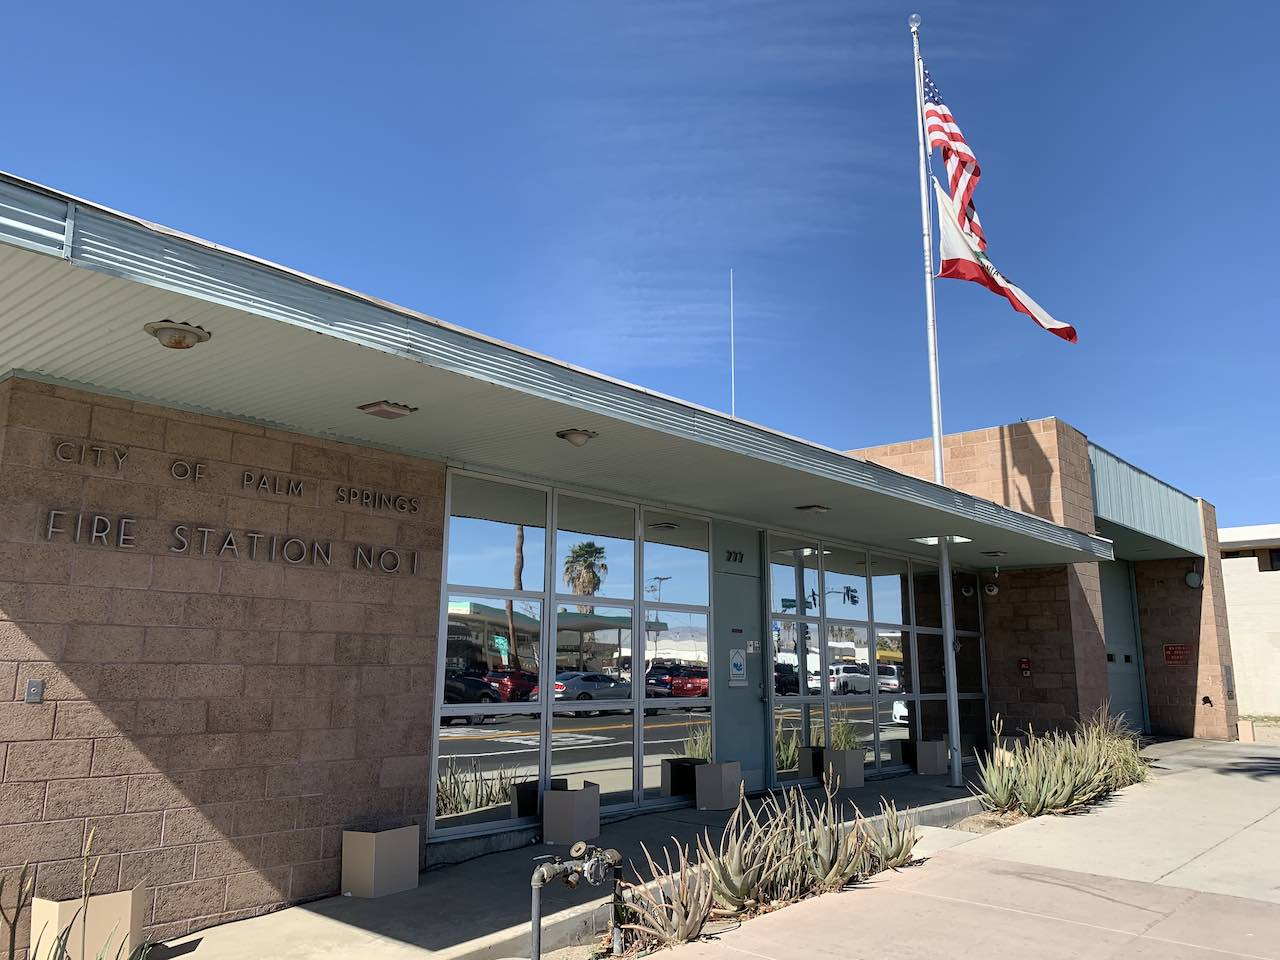 Palm Springs Fire Station